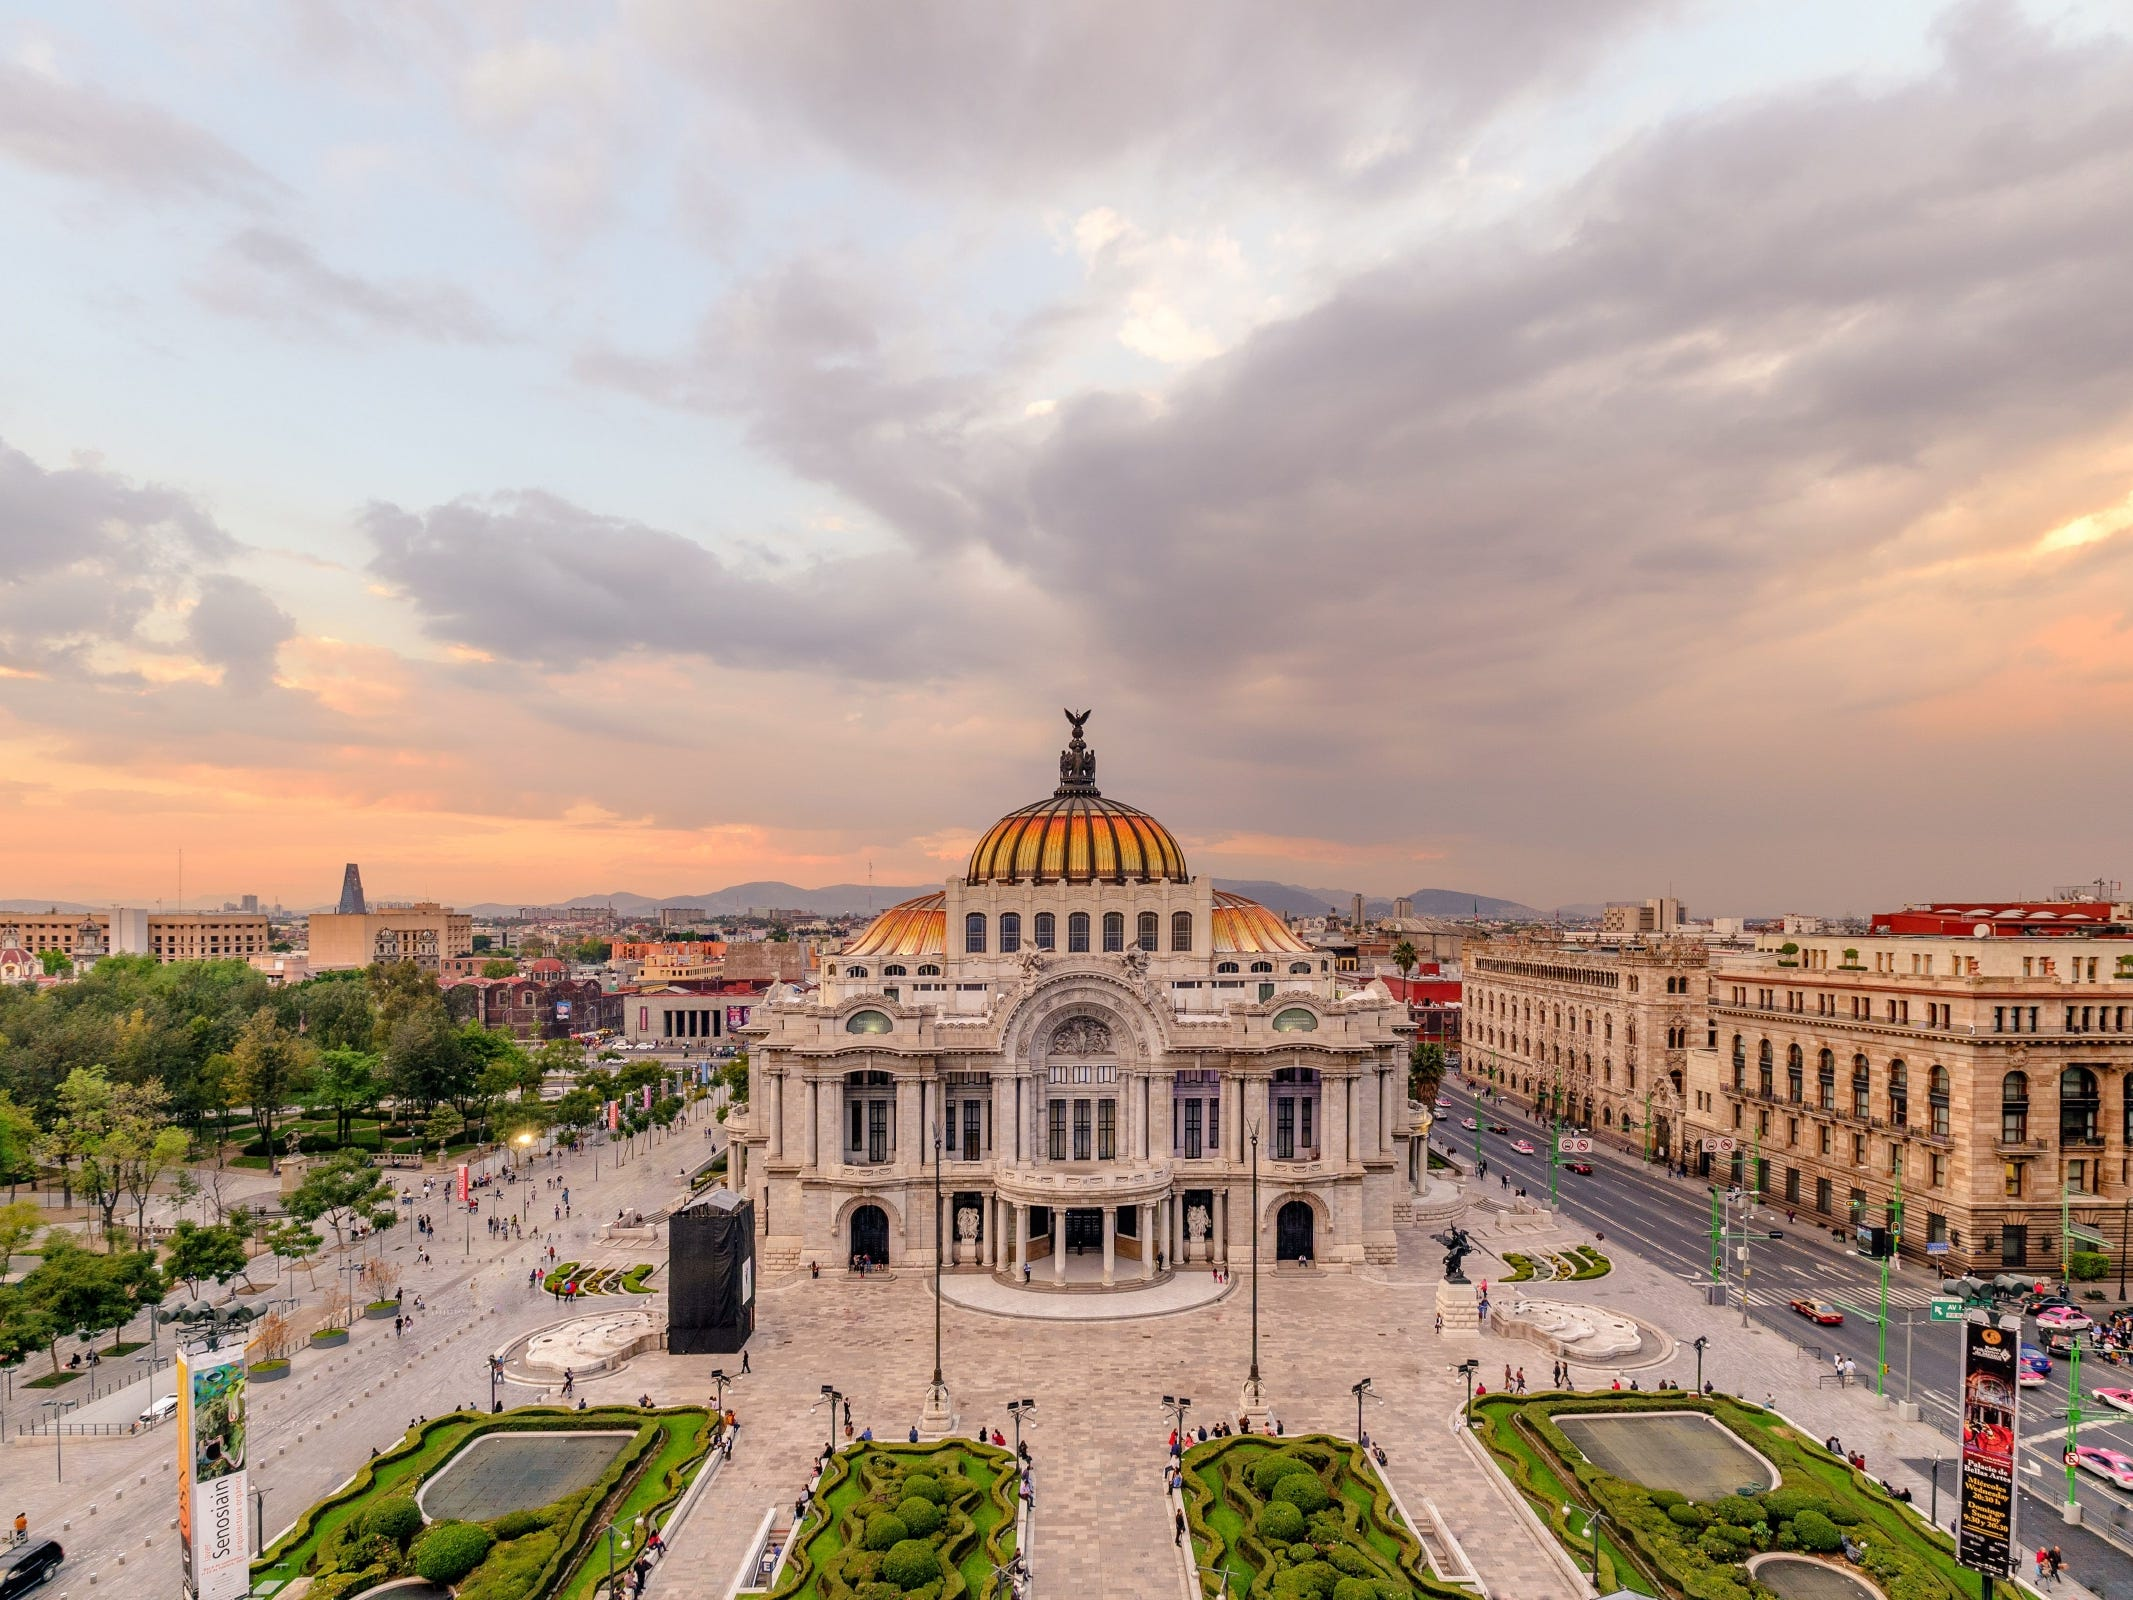 No. 6 on the list of top 10 cities to visit in 2019 is Mexico City. Mexico City nourishes its creative culture. Art, architecture and cuisine thrive as makers mine the depths of history while simultaneously embracing innovation.